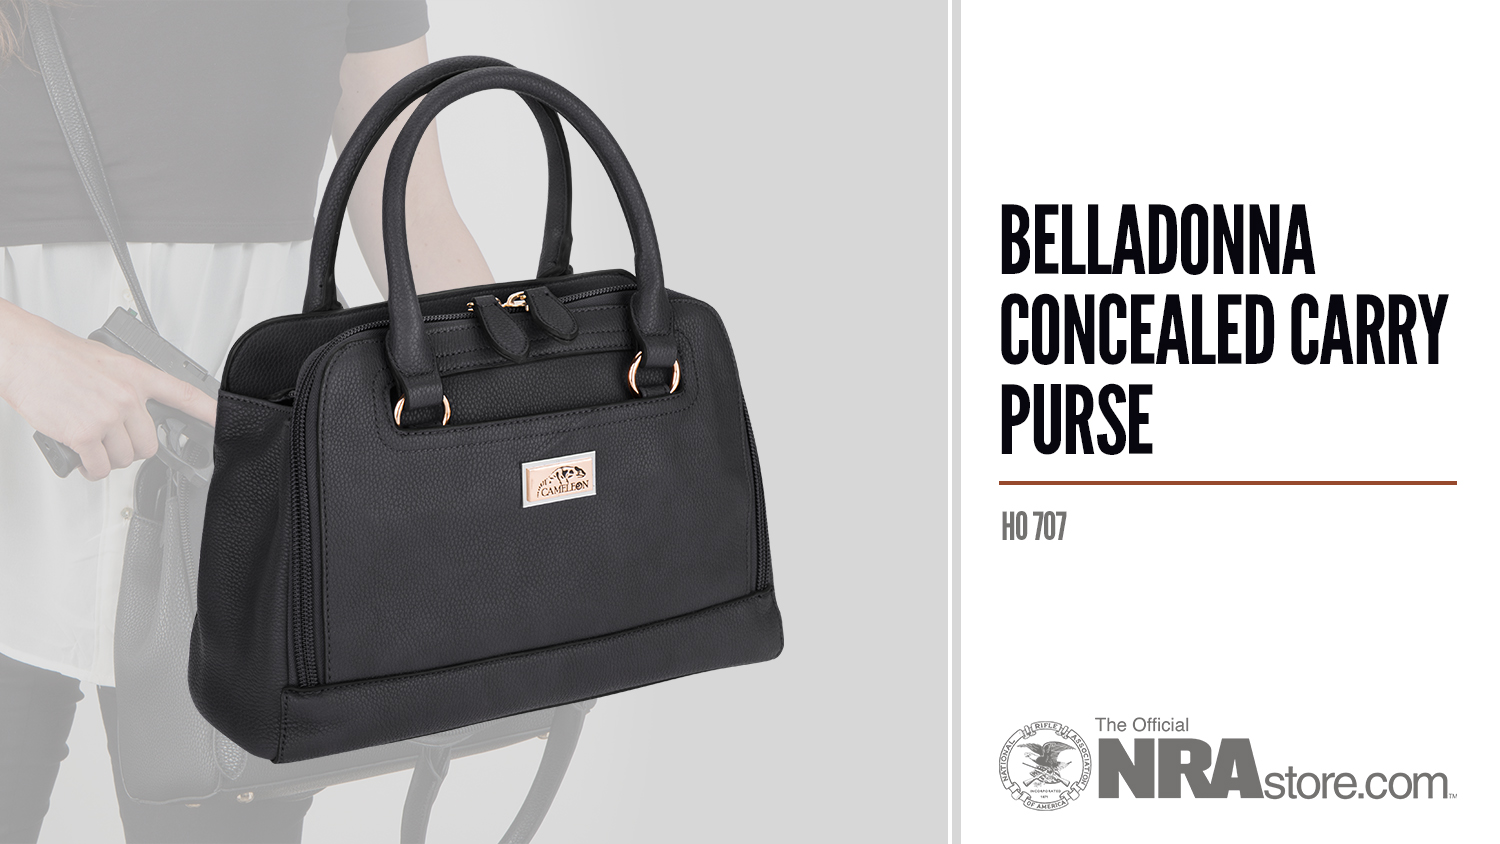 NRAstore Product Highlight: Belladonna Concealed Carry Purse